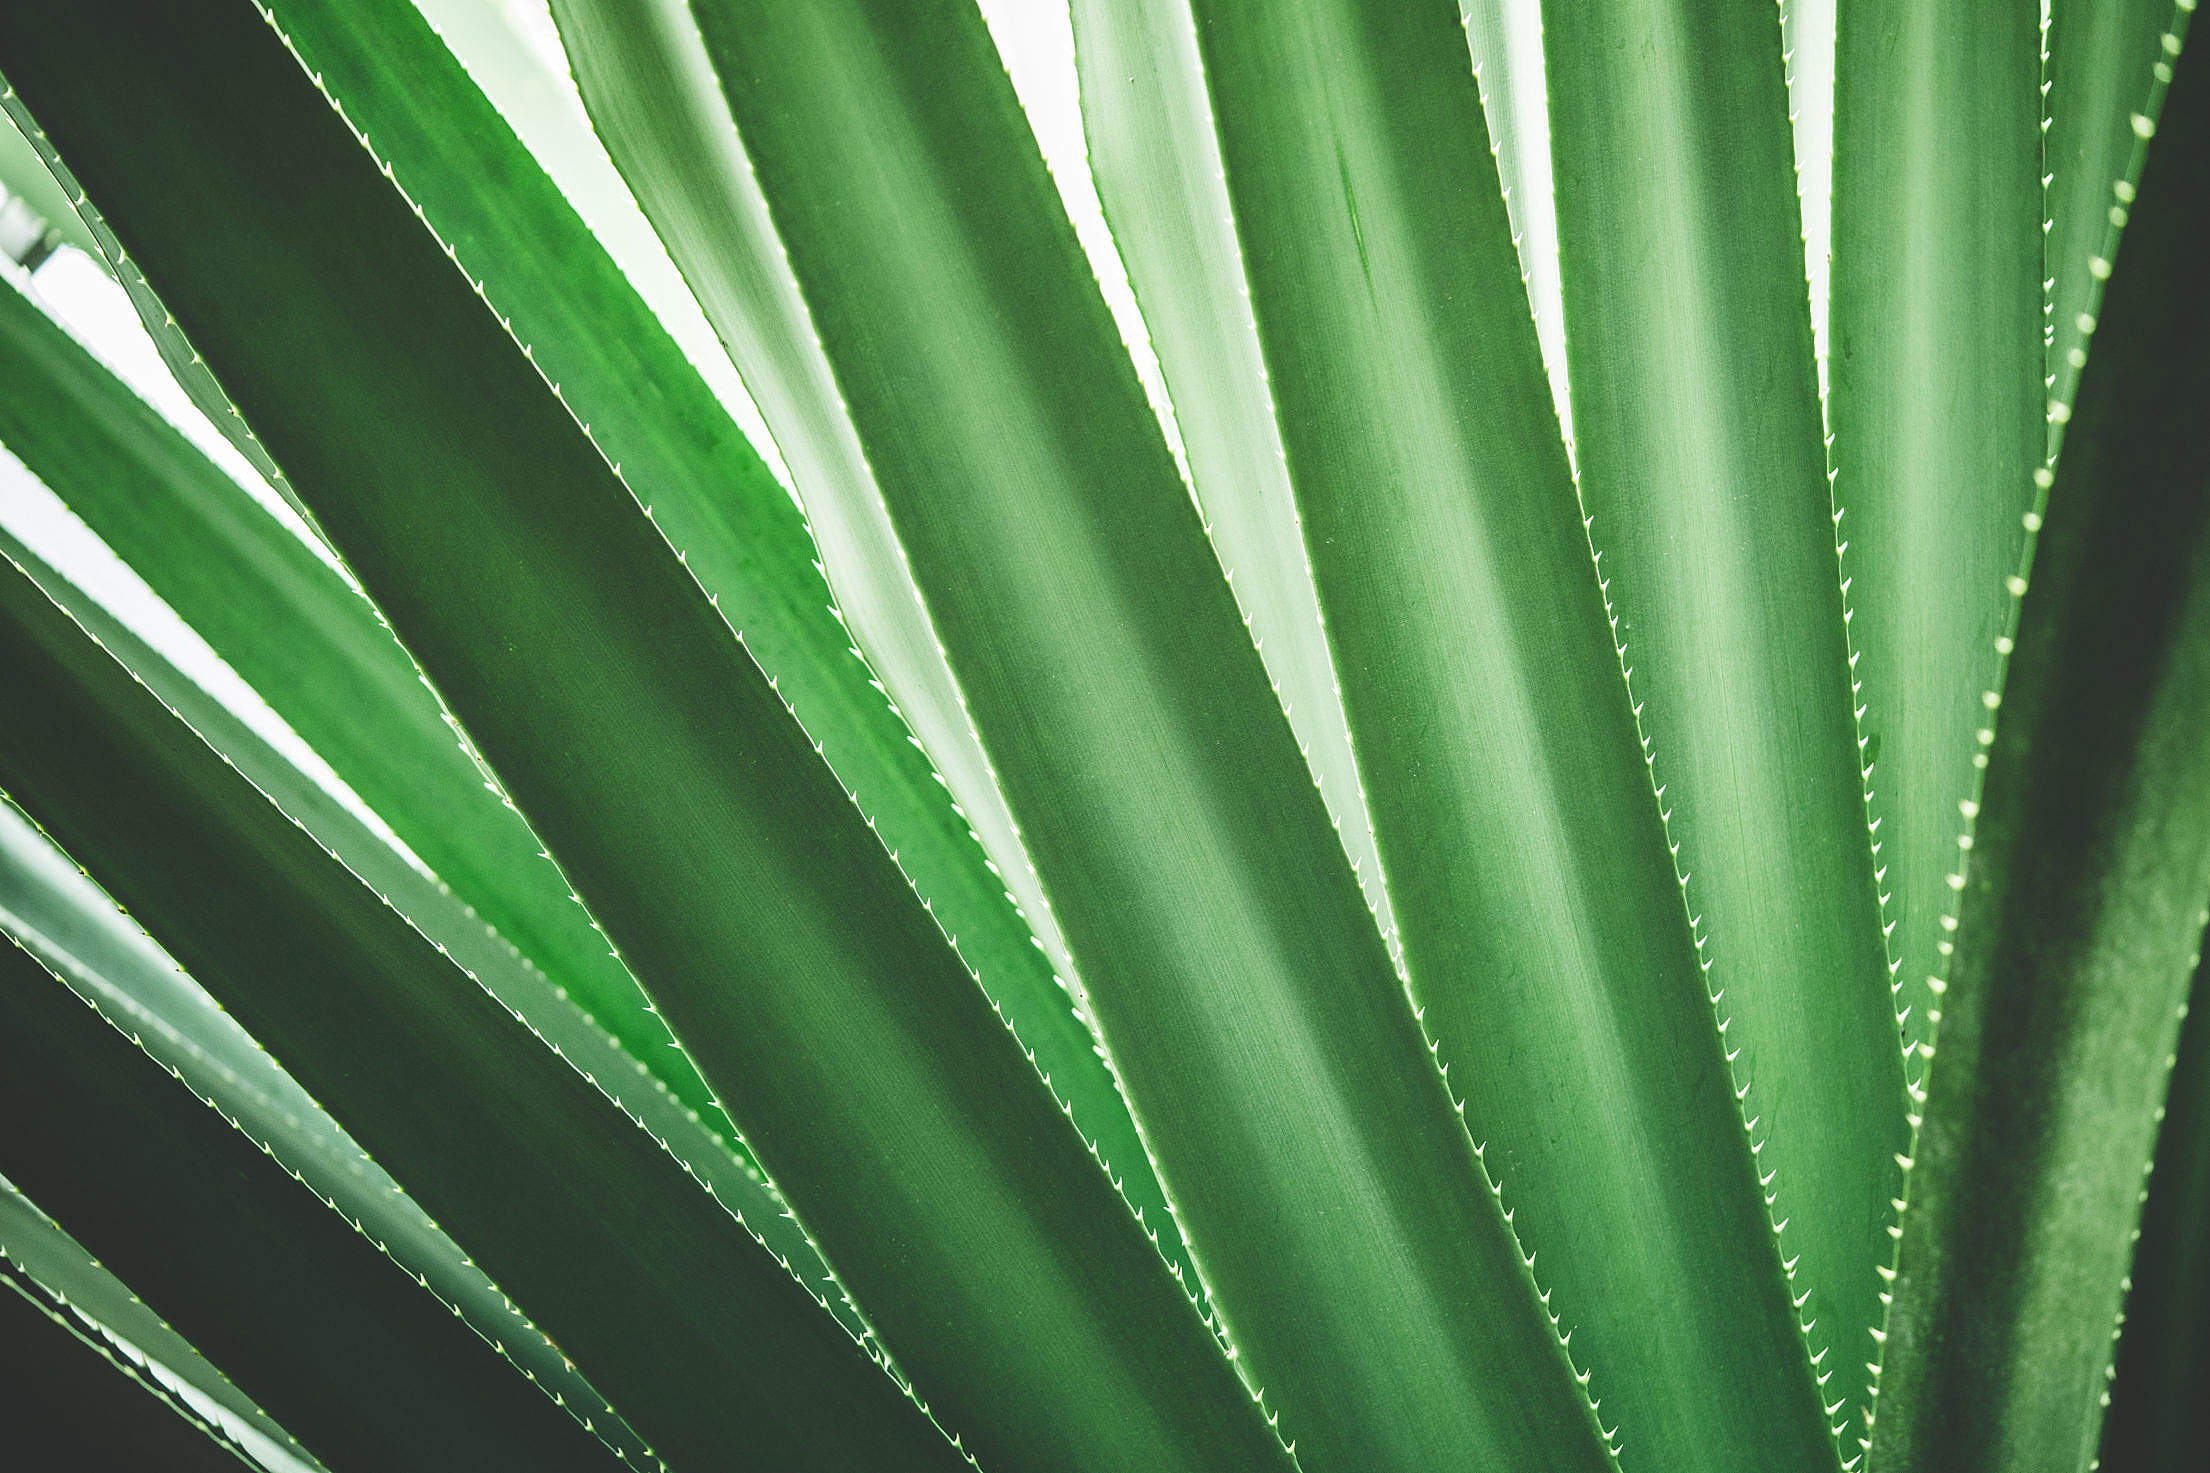 Tropical Plant Close Up Minimalistic Background Free Stock Photo